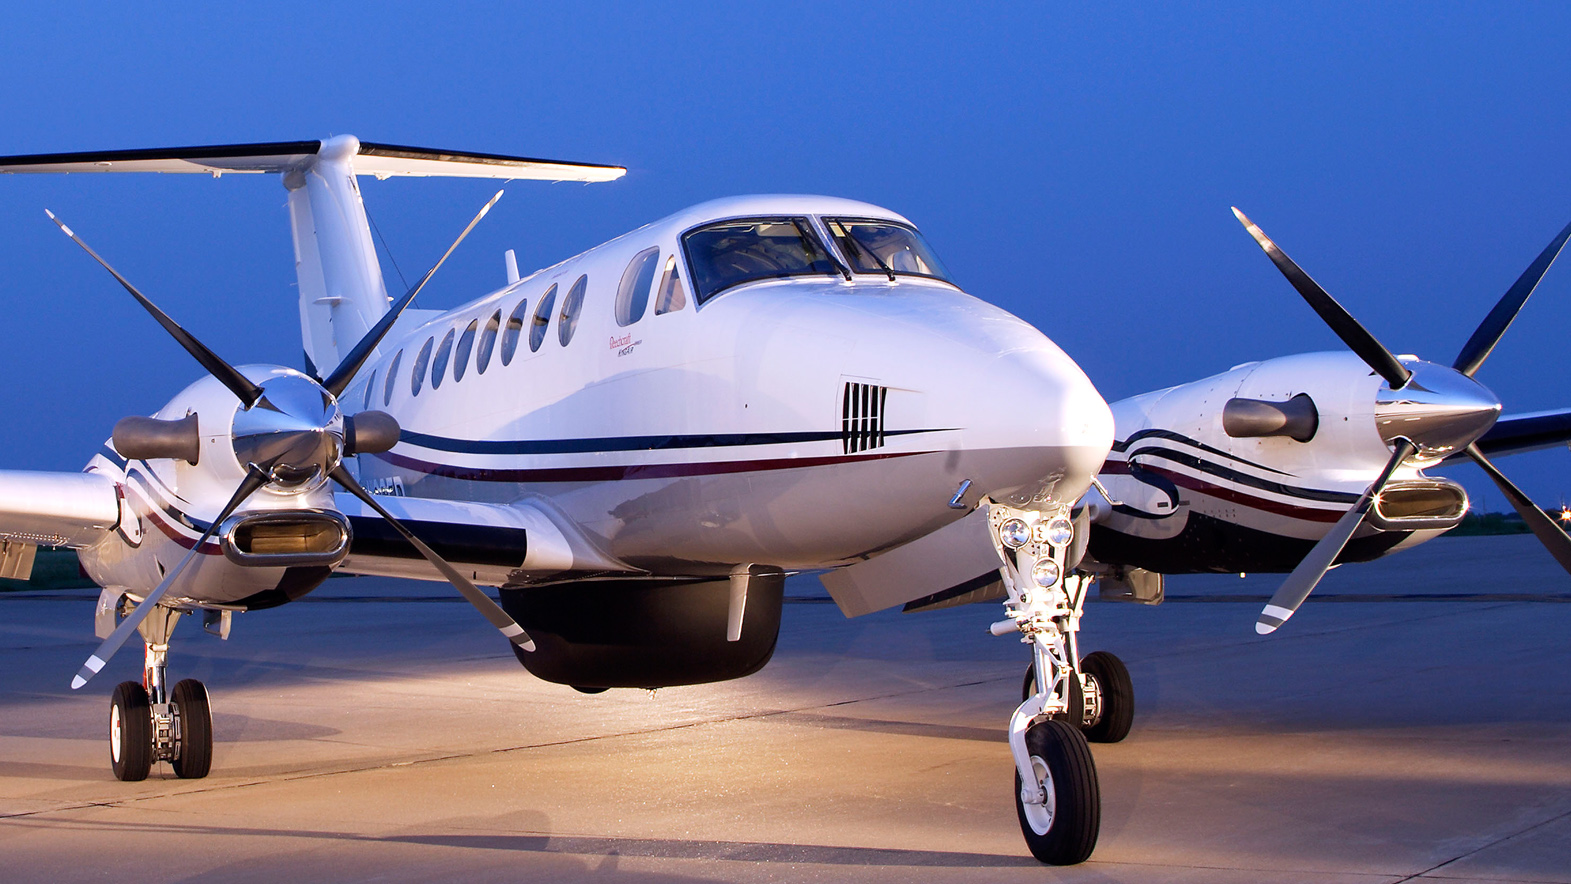 ROUNDTRIP PRIVATE JET AND HOTEL STAY IN LAS VEGAS for 7